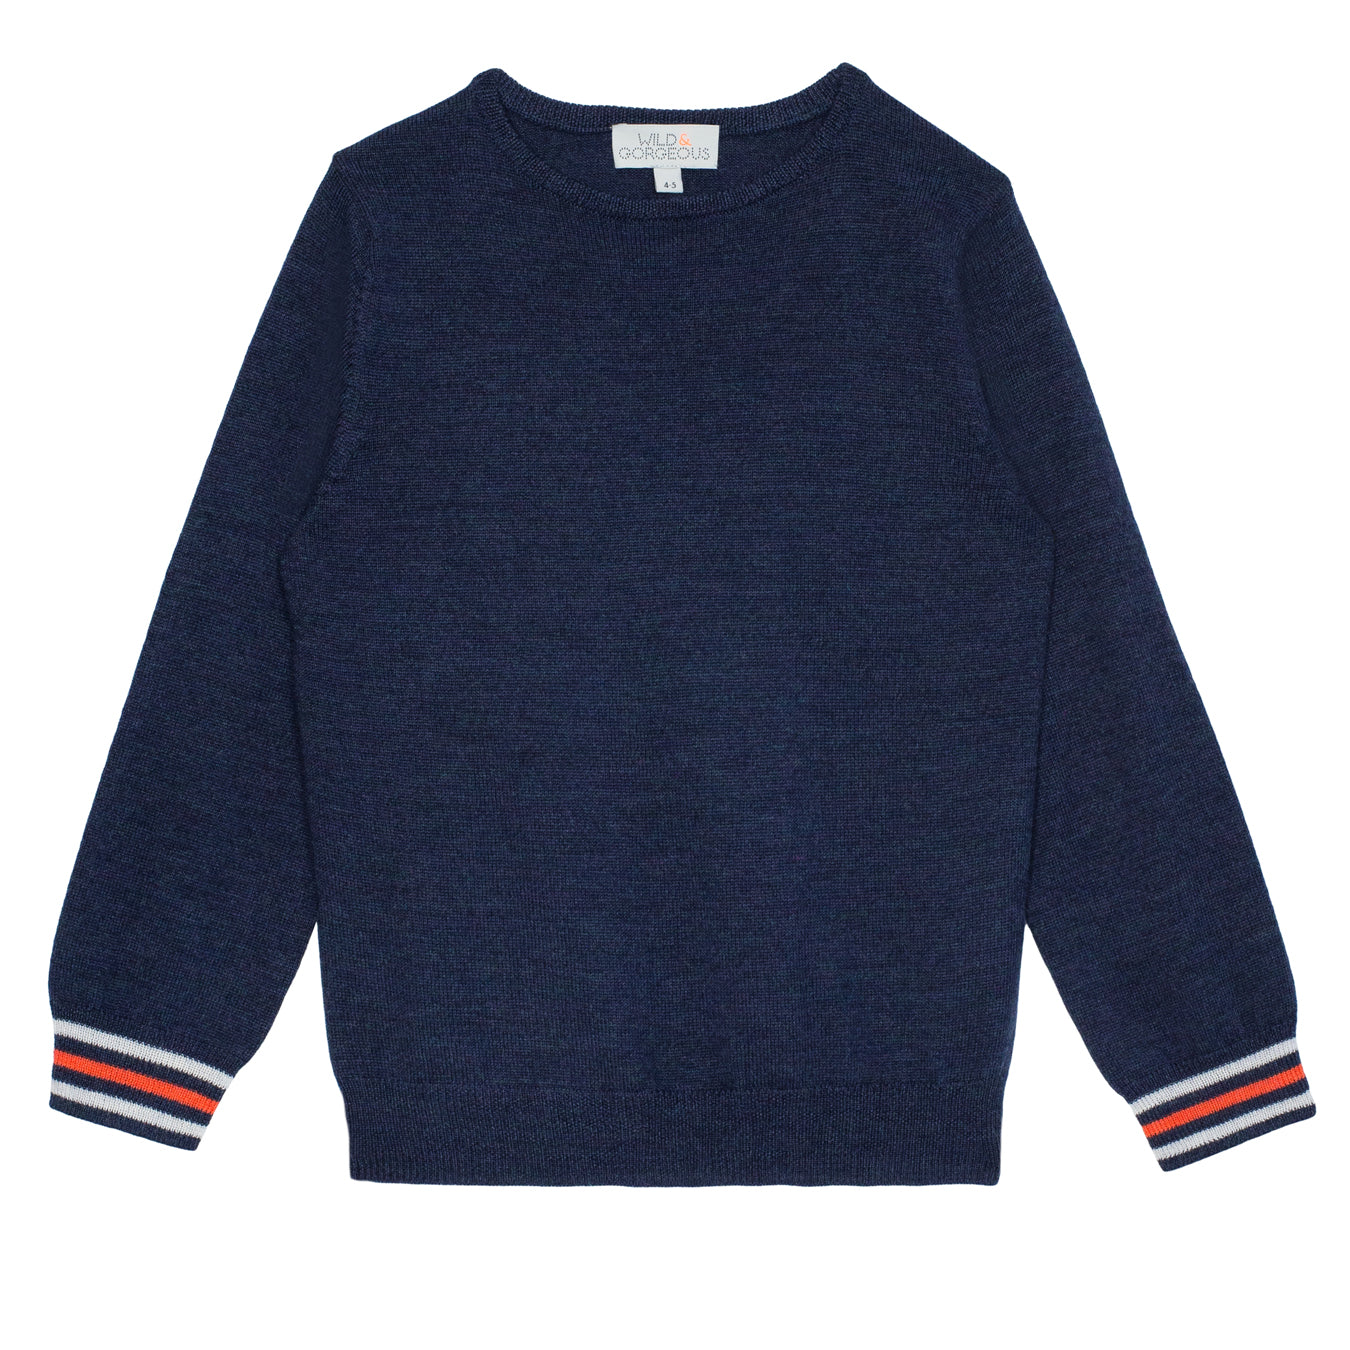 BOYS Navy Planet sweater